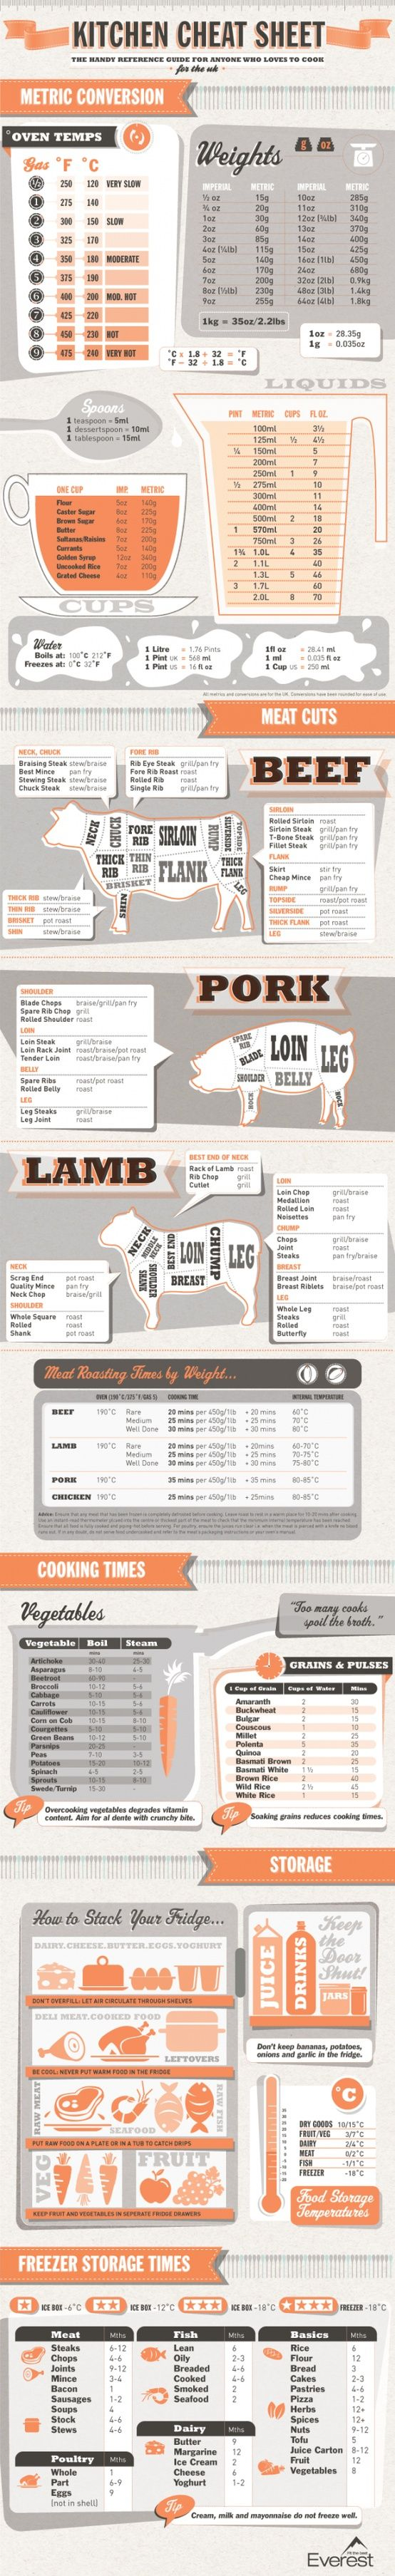 Kitchen Cheat Sheet » The Homestead Survival